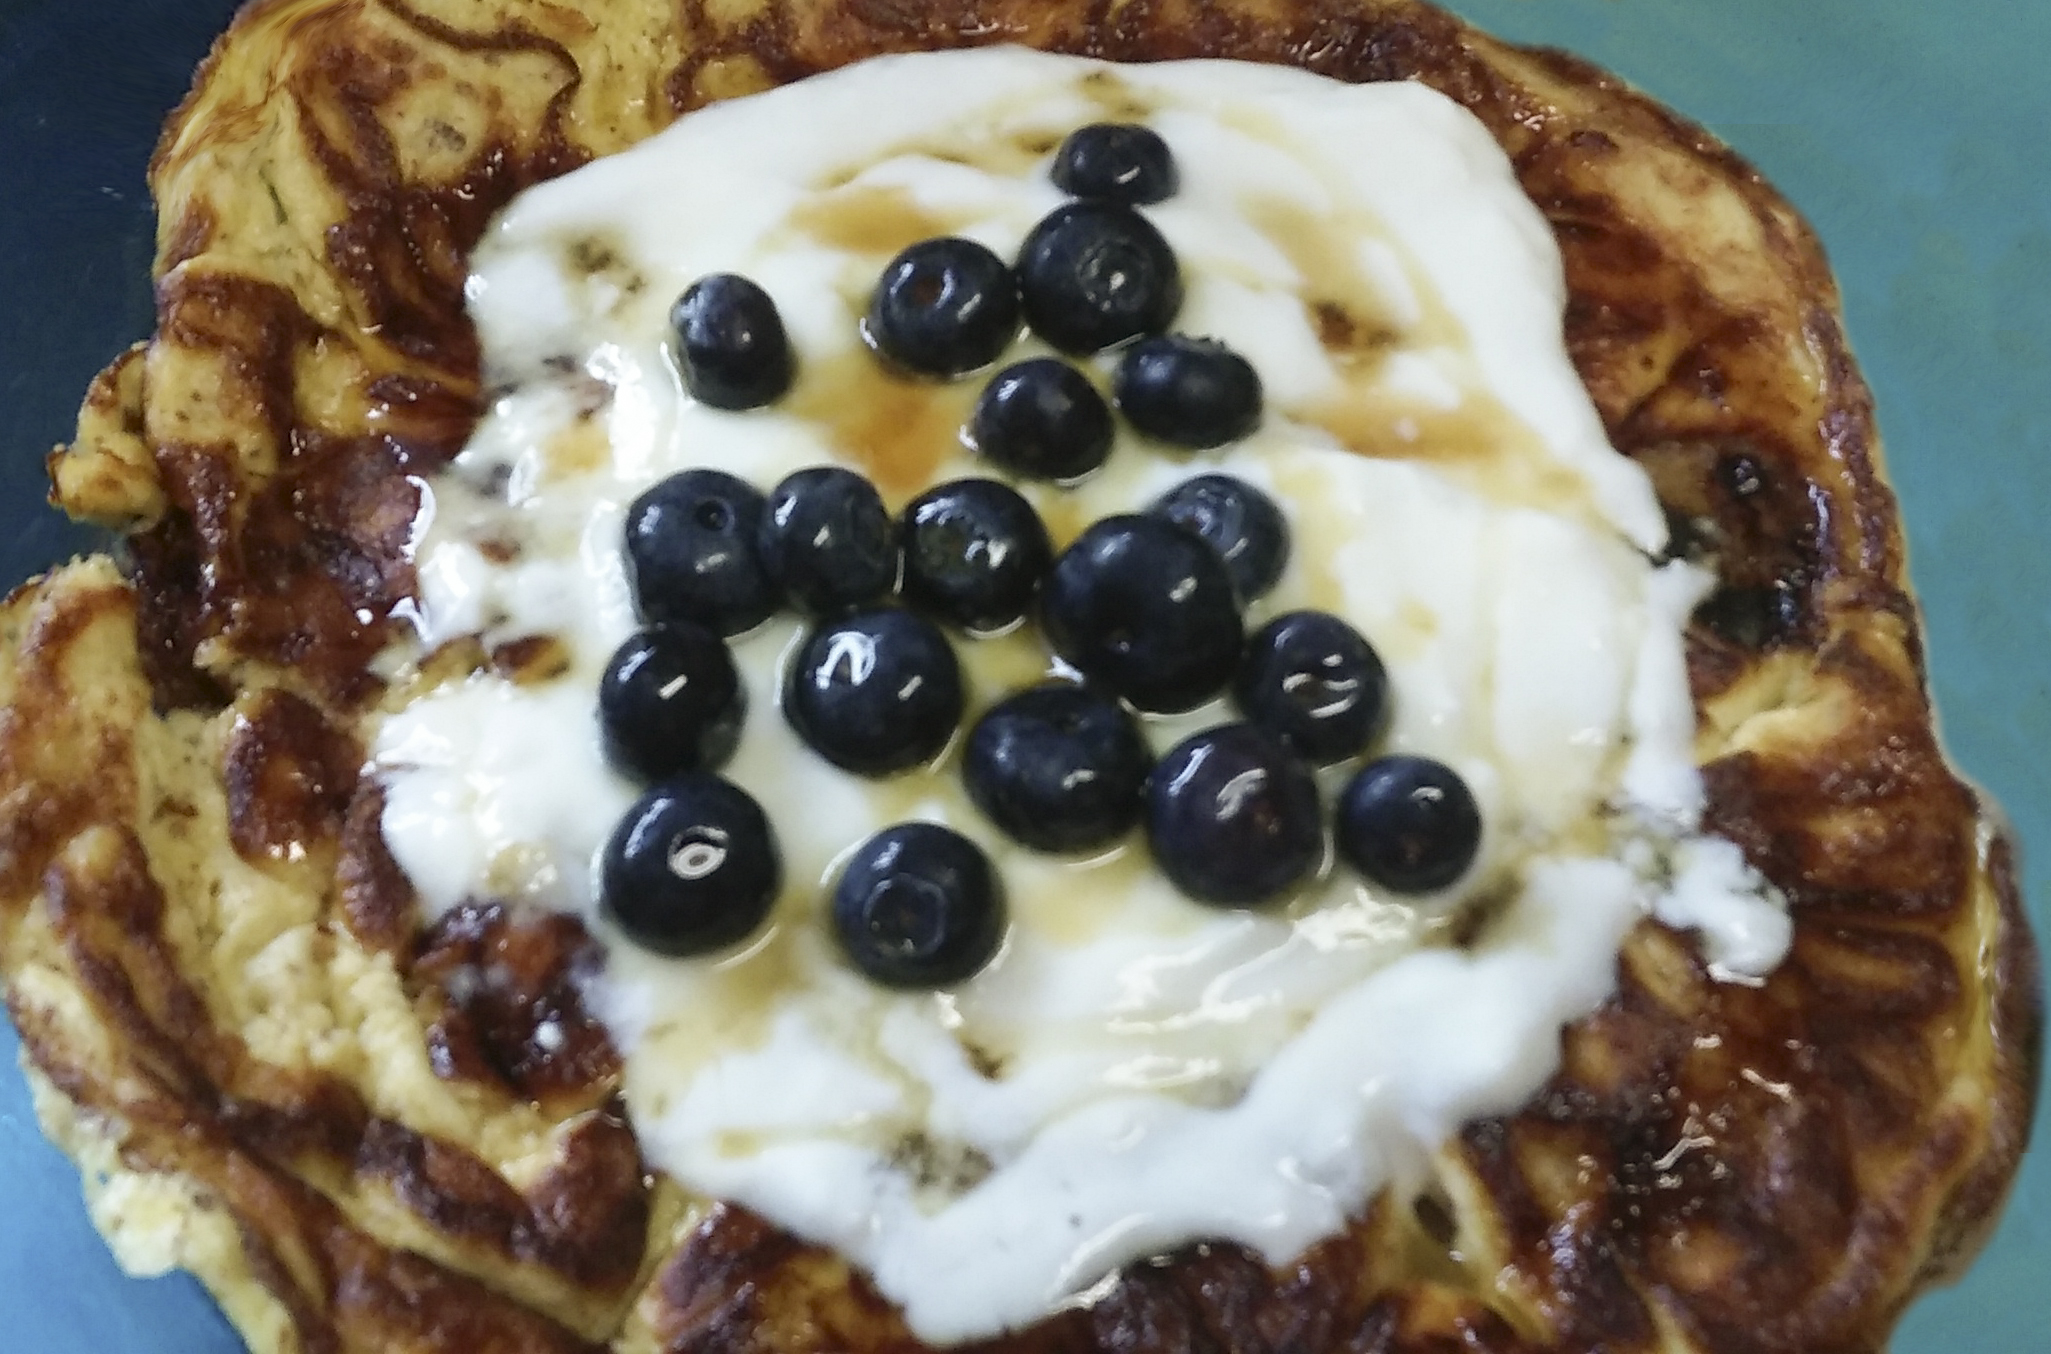 Almond Flour Banana Pancakes with Blueberries on Top